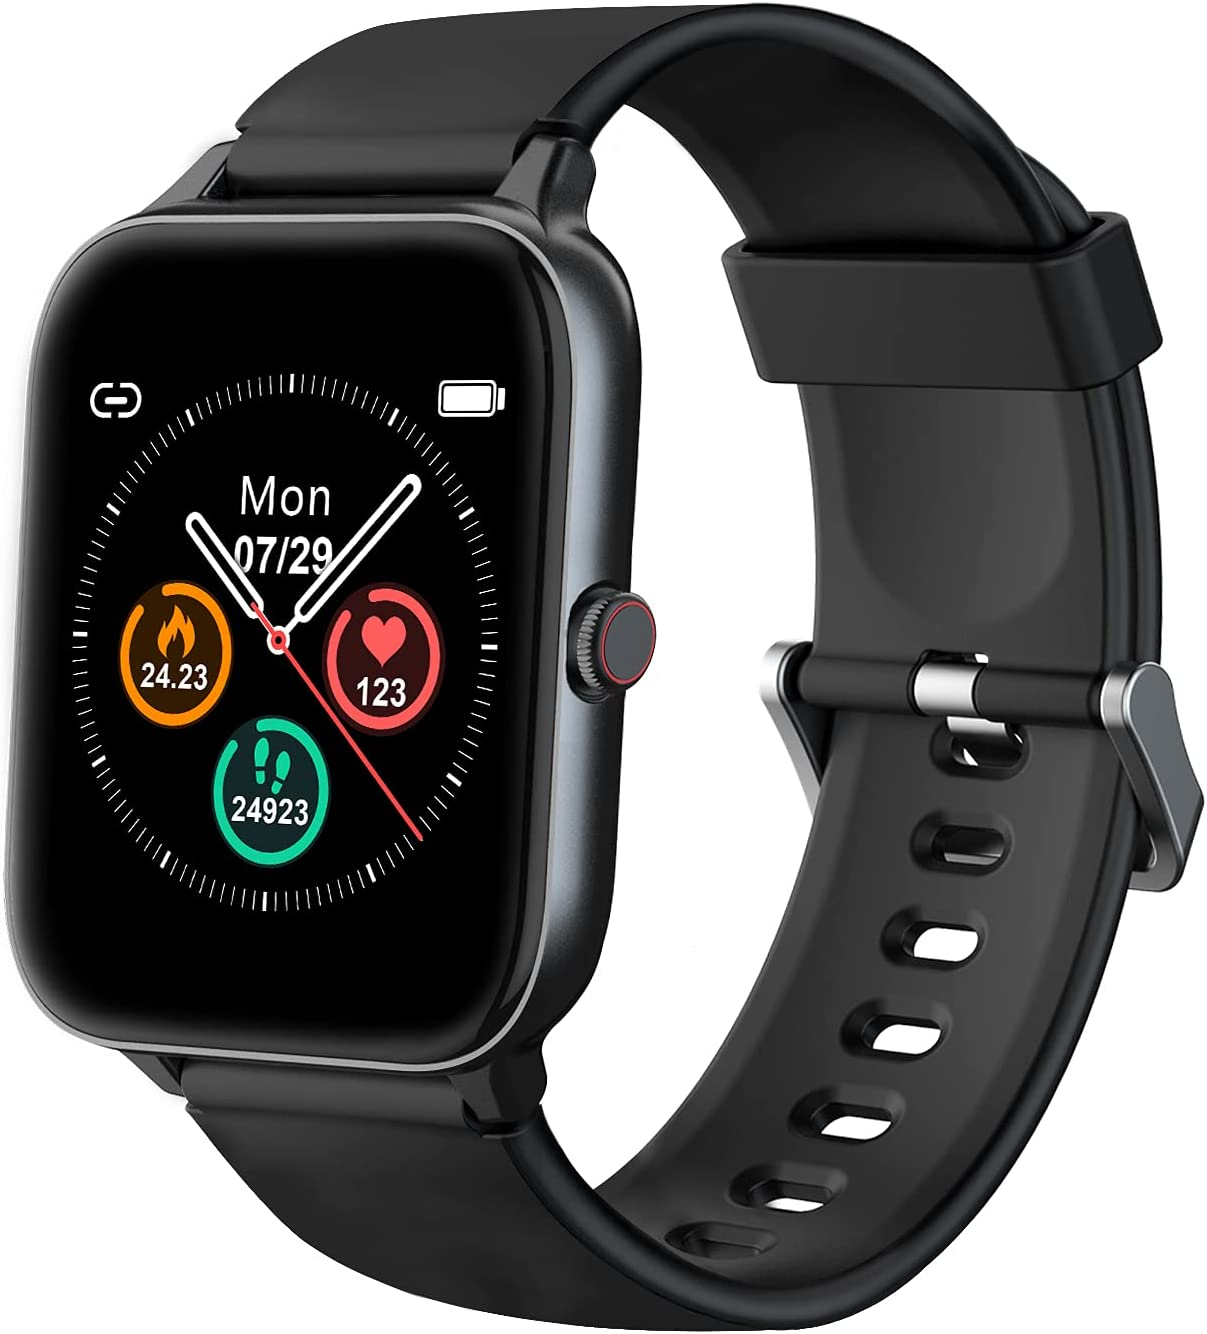 """IOWODO Smart Watch for Android Phones and iOS Phones Fitness Tracker- 1.55"""" Touch Screen Sport Watch IP68 Swimming Waterproof Smartwatch Heart Rate Monitor Smart Watches for Men Women Black"""